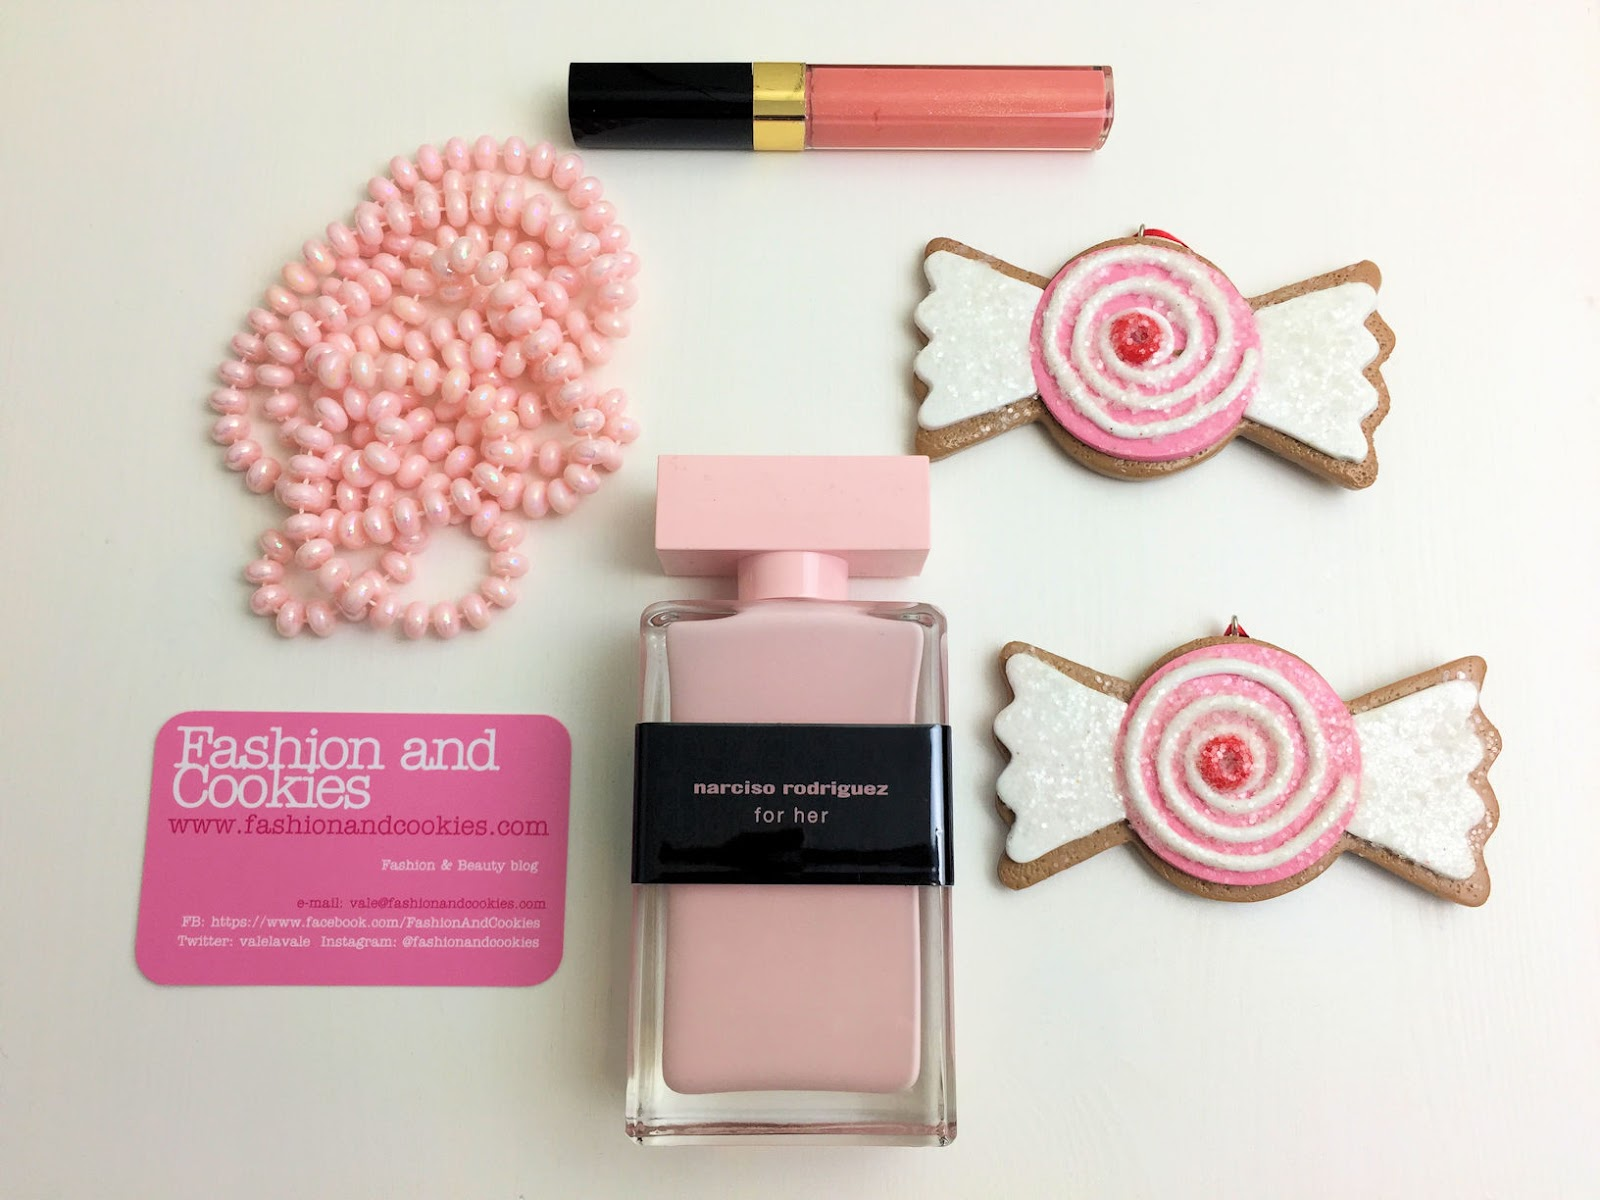 Best perfume bottles for Instagram on Fashion and Cookies beauty blog, beauty blogger